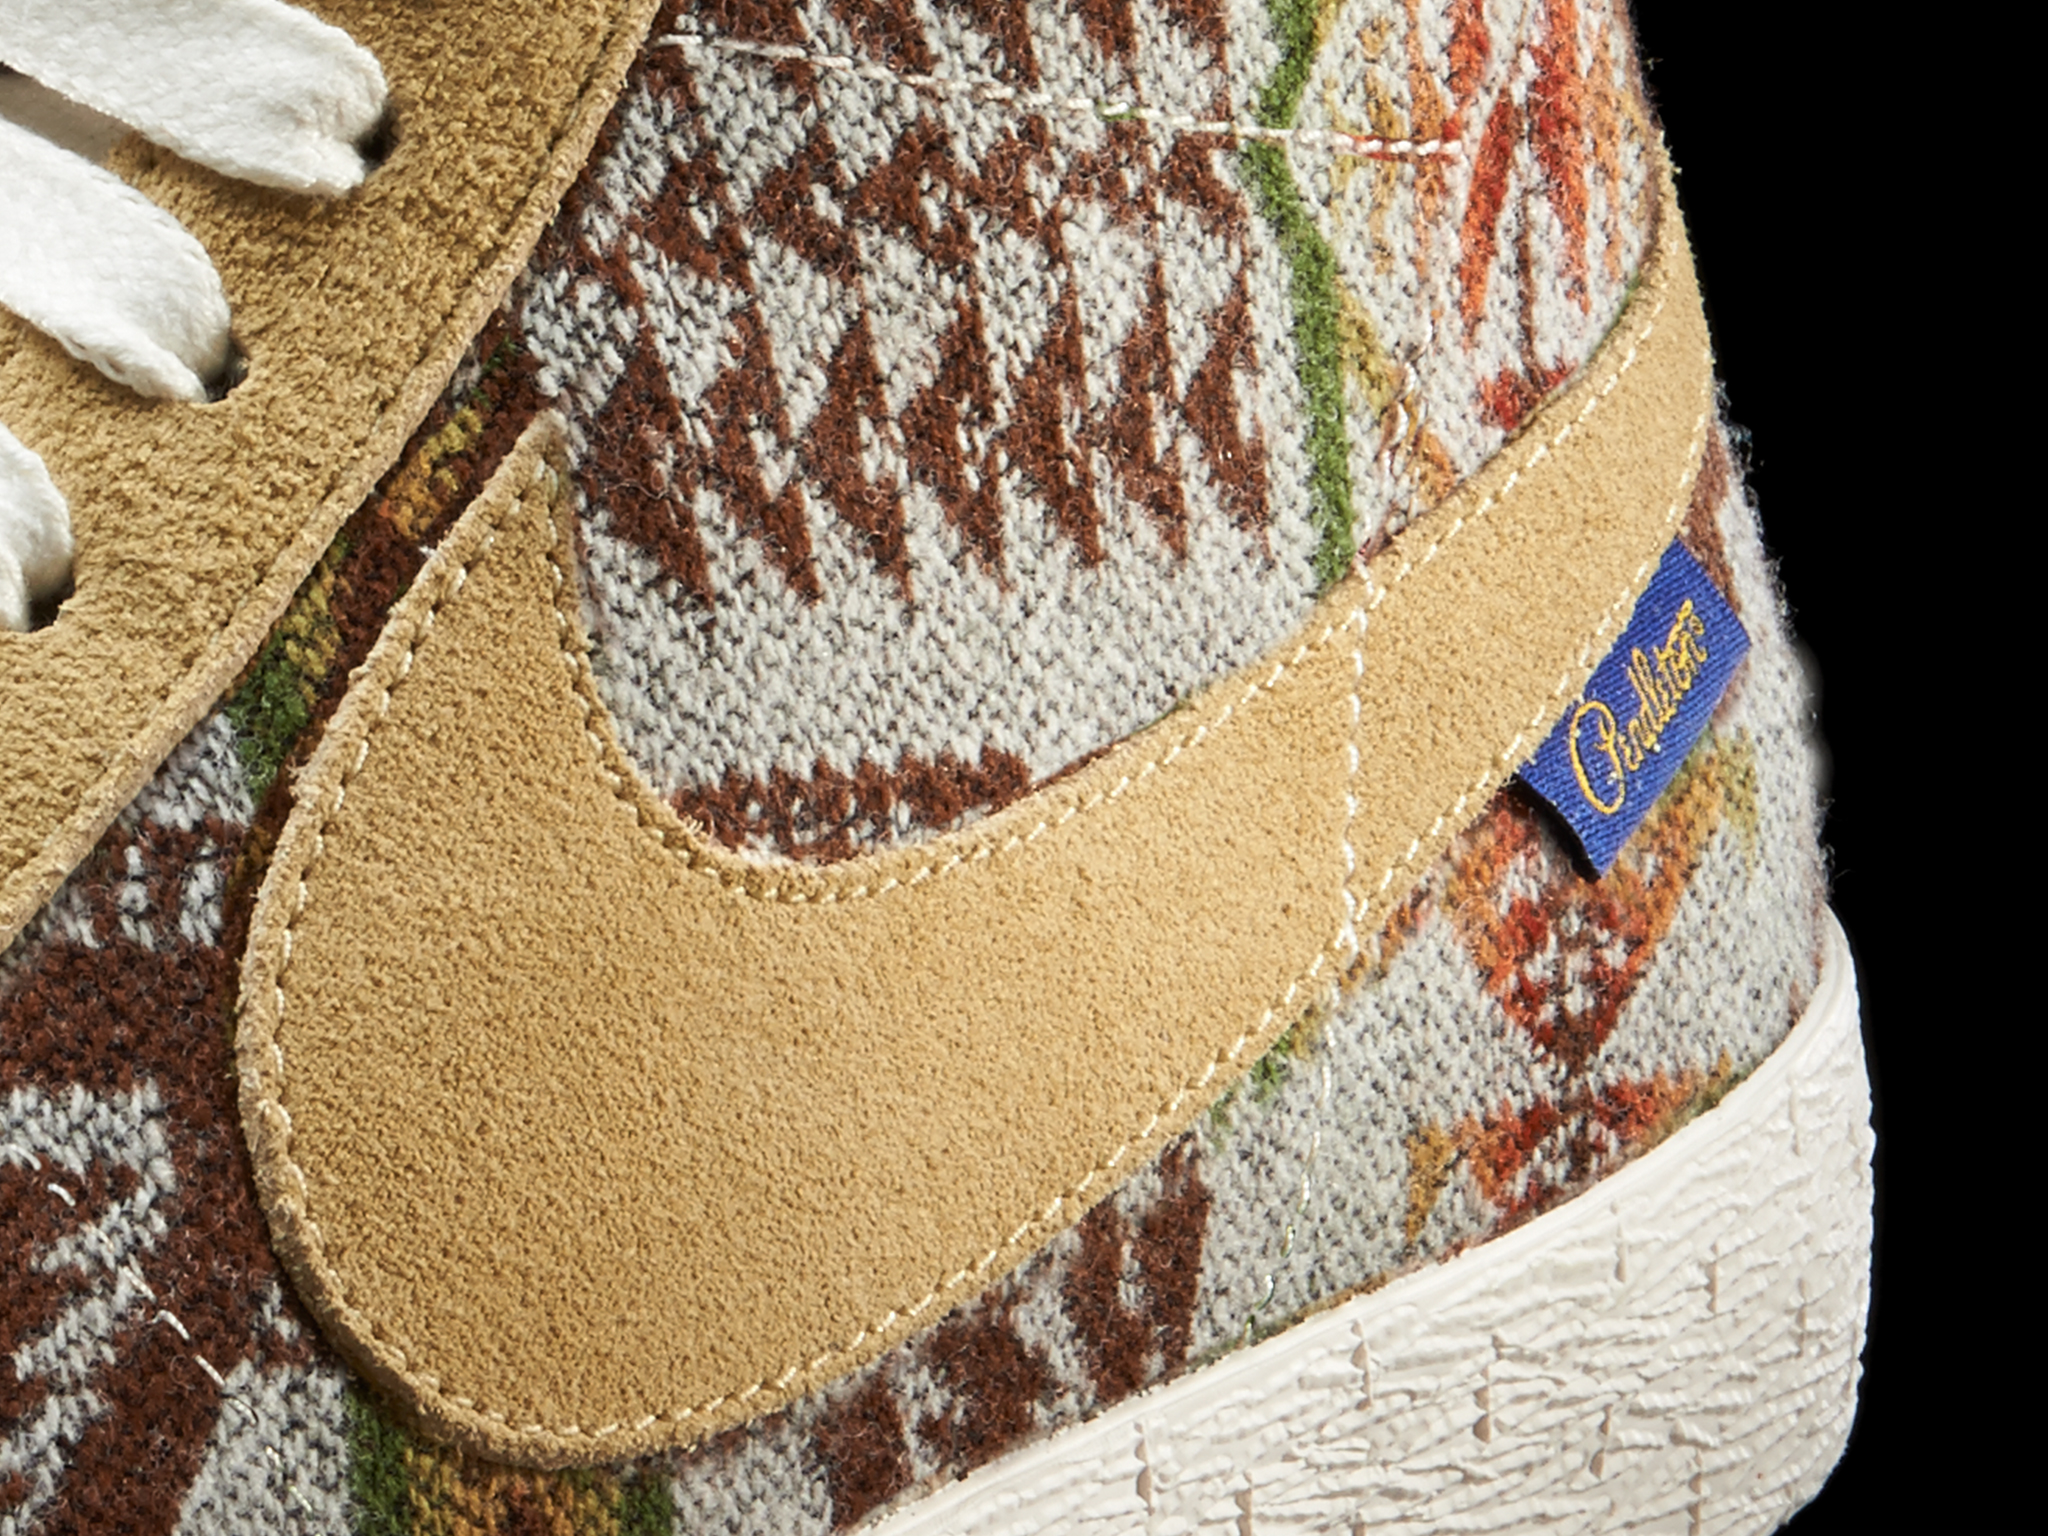 best service b153d 95251 ... Made To Order NIKEiD x Pendleton Collection - Nike News ...